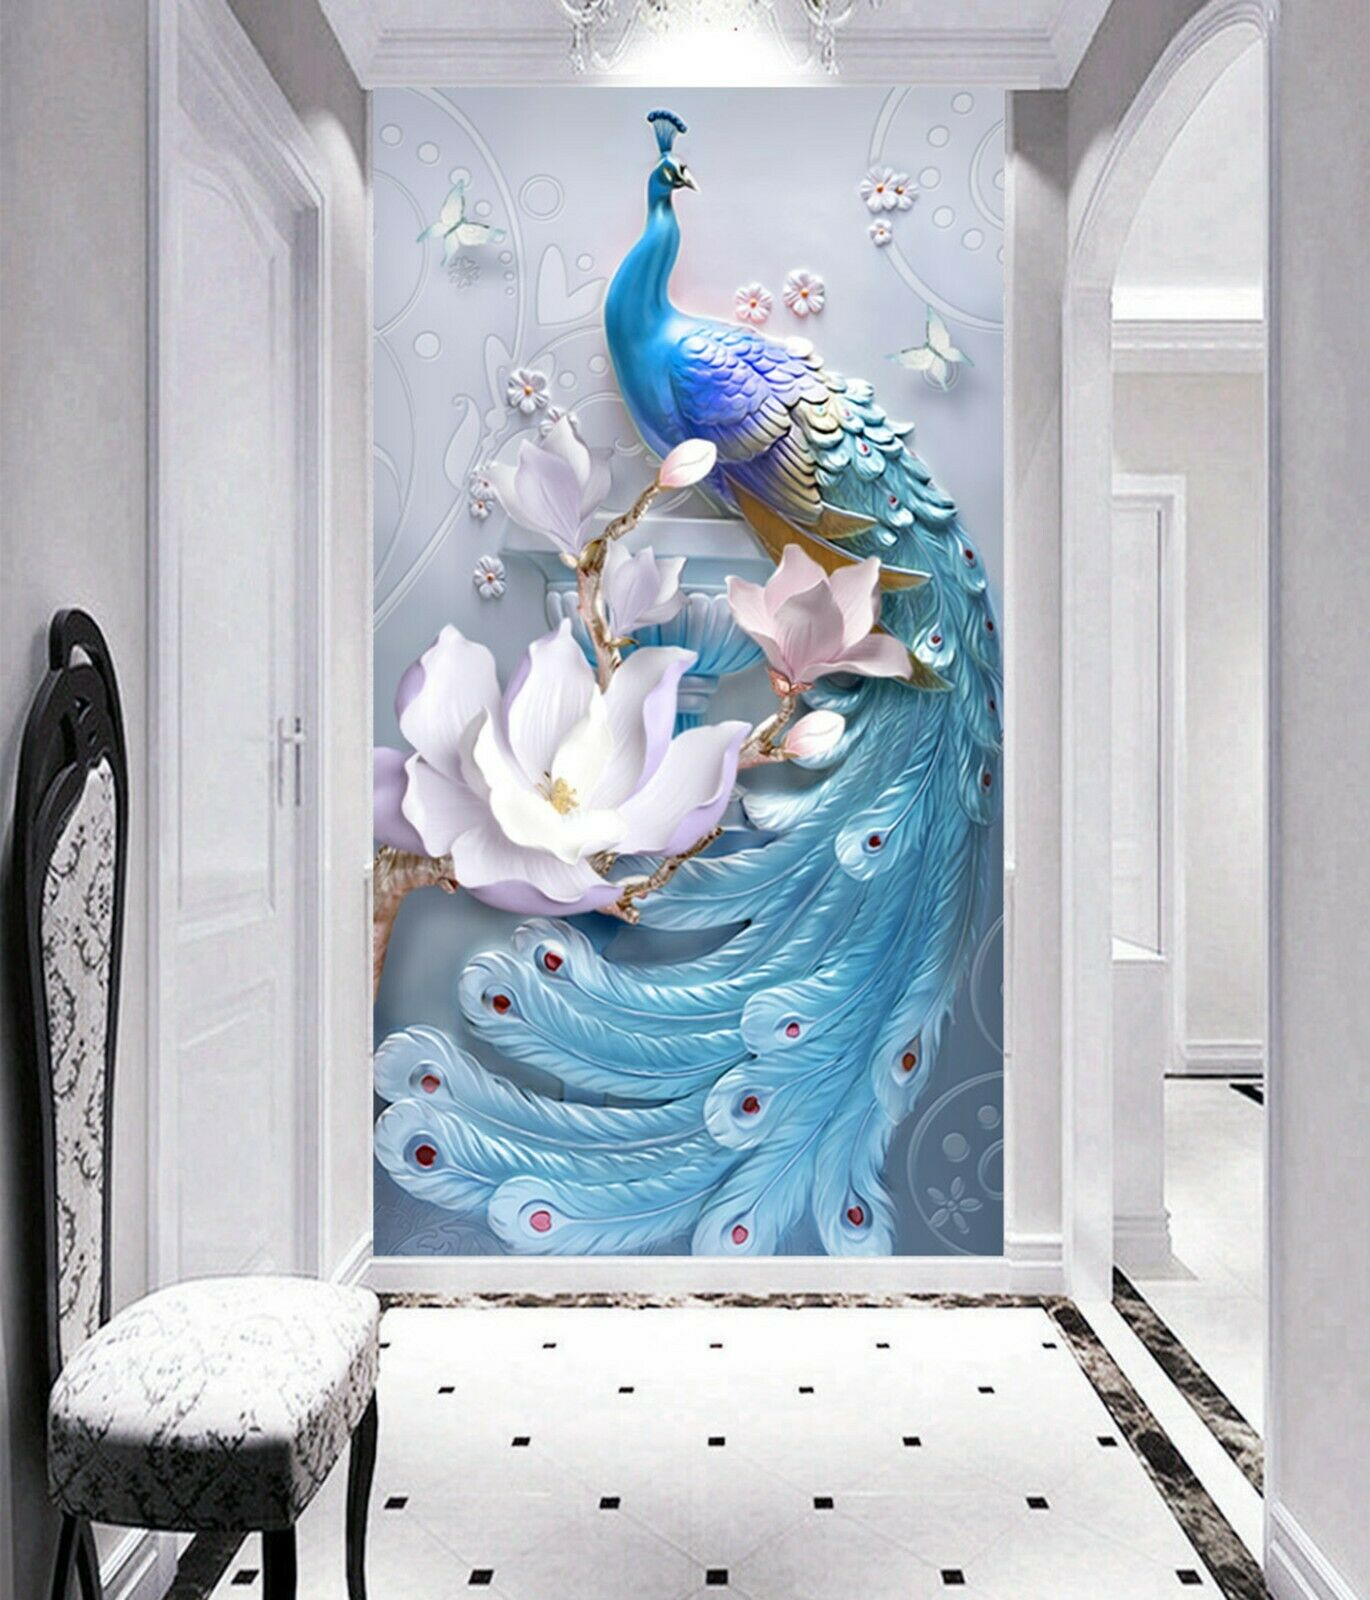 3D Flowers Peacock I045 Wallpaper Mural Sefl-adhesive Removable Sticker Kid Weny